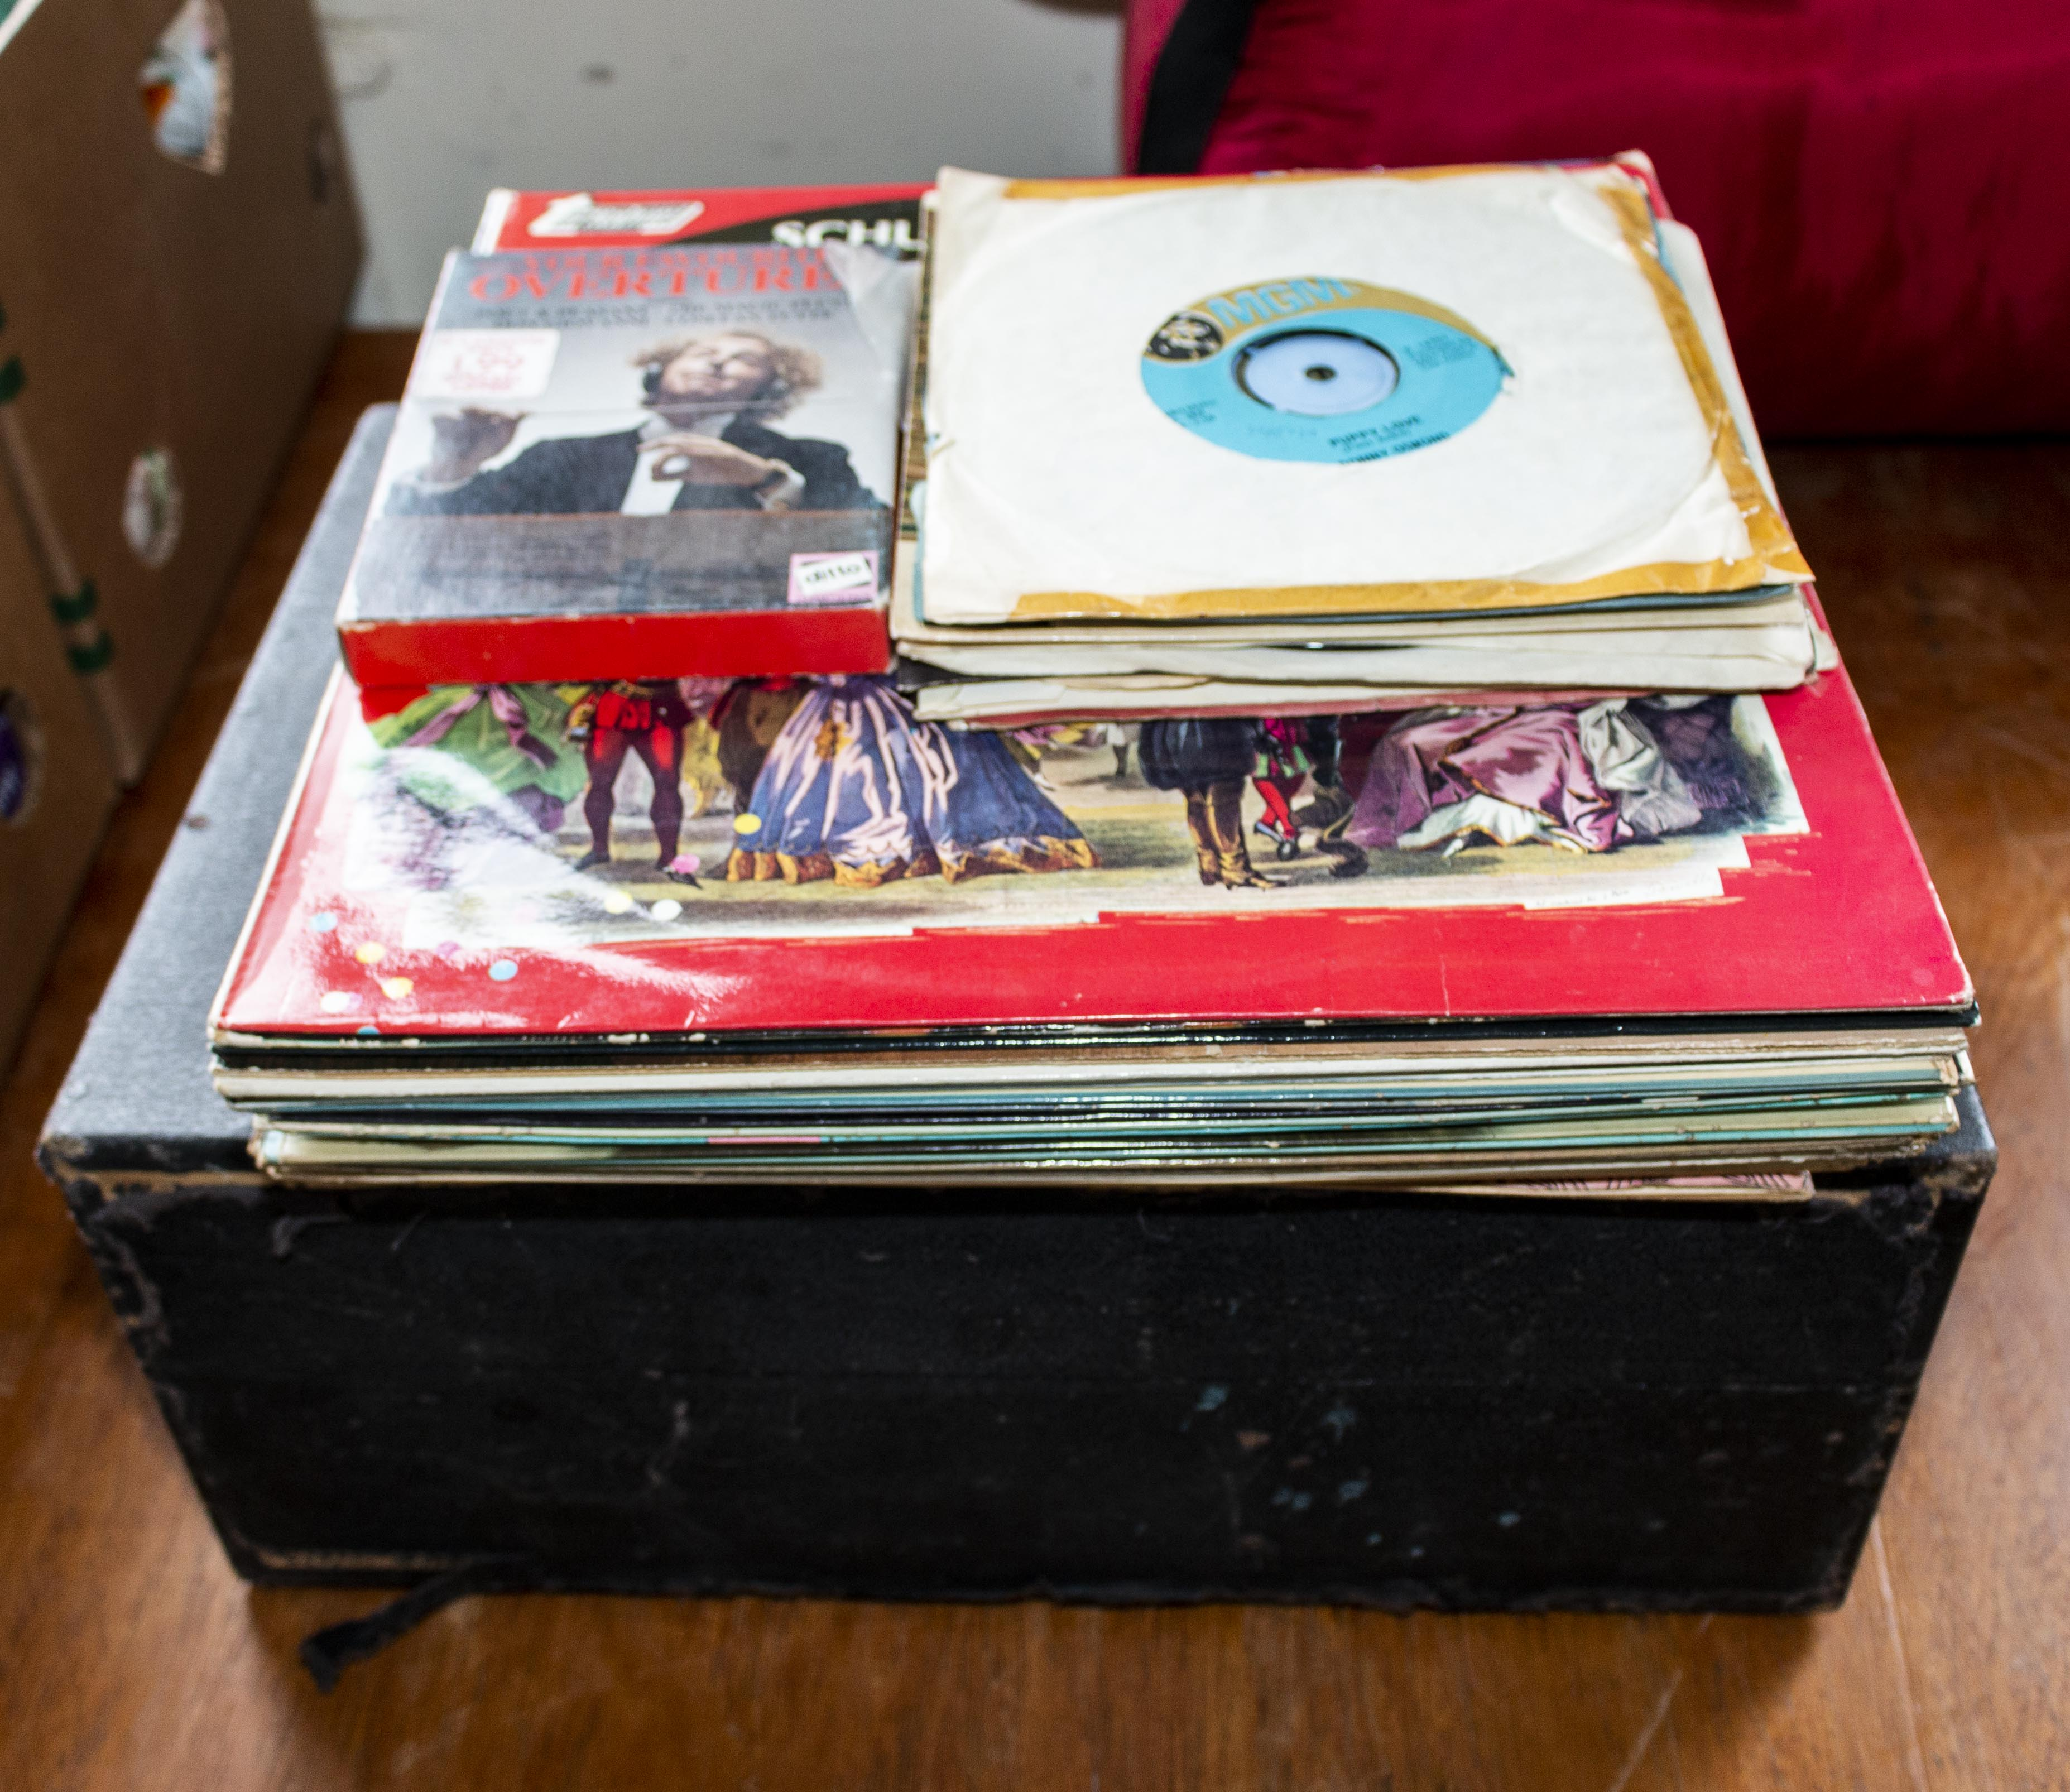 Lot 10 - A vintage record player and records